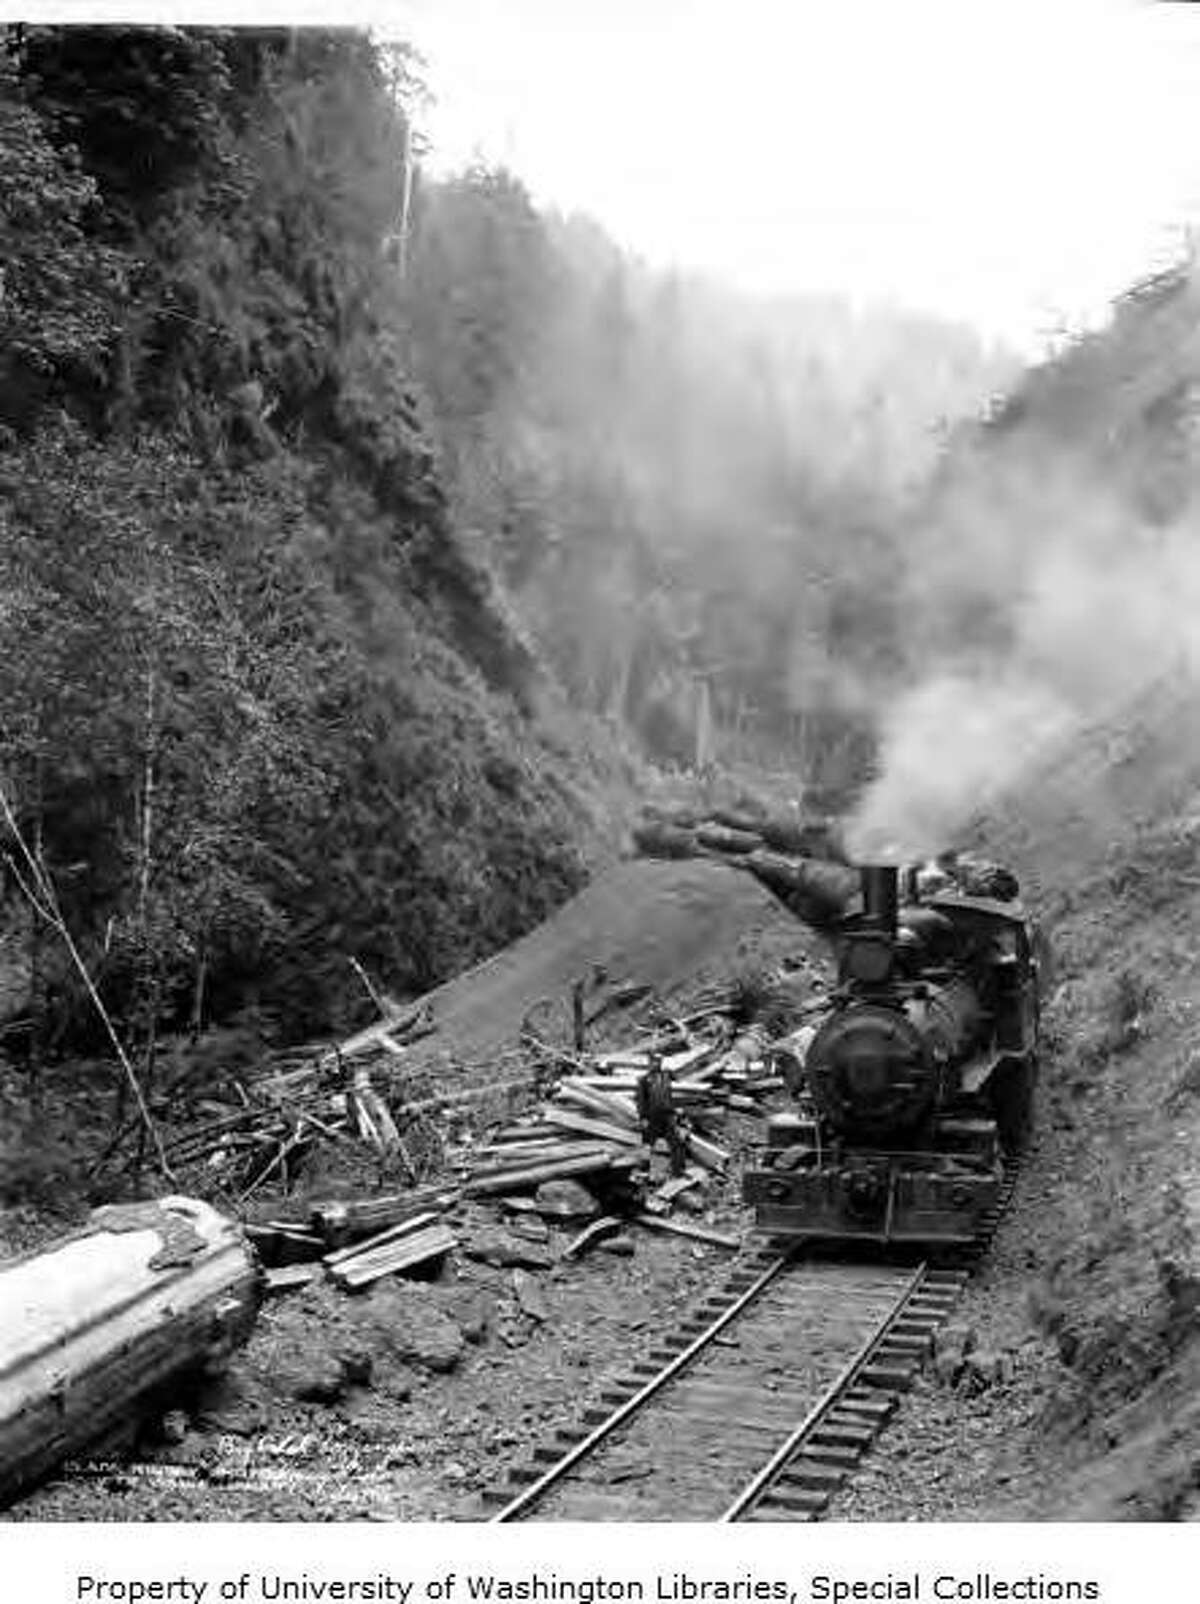 """""""Big Creek Logging Company was based in Knappa, Oregon in Clatsop County. Knappa was named in 1891 for a pioneer settler named Aaron Knapp, Jr. The Big Creek Logging Company had a railroad that operated from 1912 to 1923. The company closed permanently in 1942."""" -UW. Pictured: 0-6-0 Alco locomotive on a log train, Big Creek Logging Company, Knappa, Oregon, circa 1918. Photo courtesy University of Washington Special Collections."""